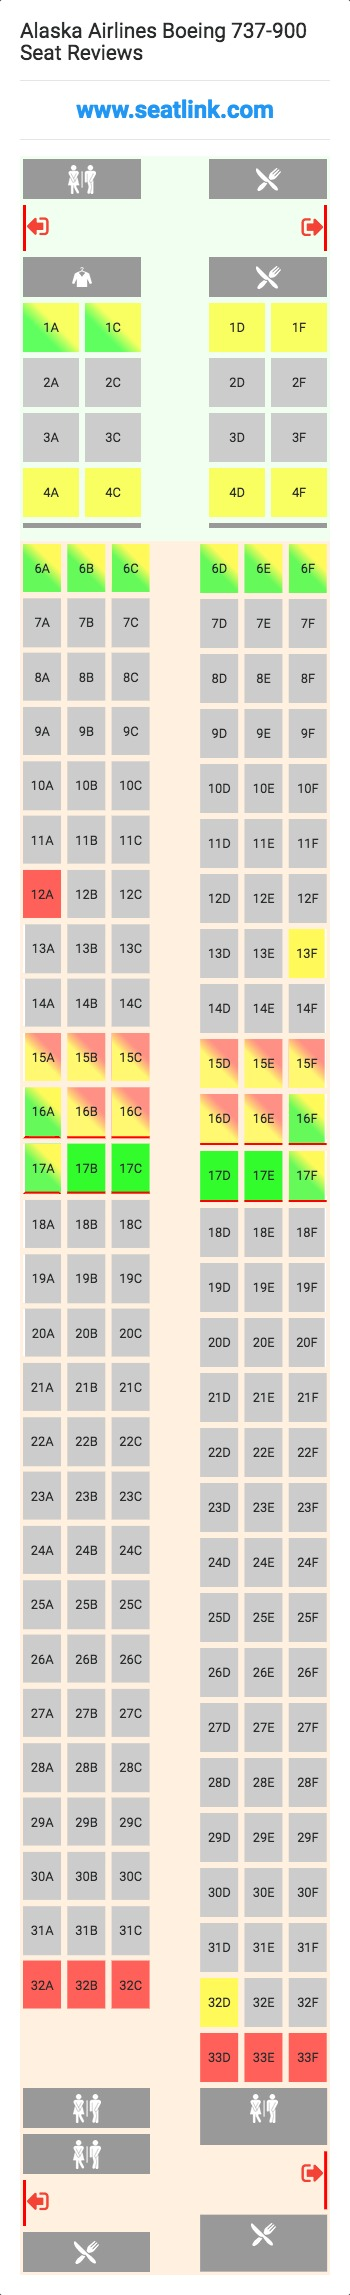 boeing 739 900 seating chart related keywords boeing 739 900 seating chart long tail keywords. Black Bedroom Furniture Sets. Home Design Ideas